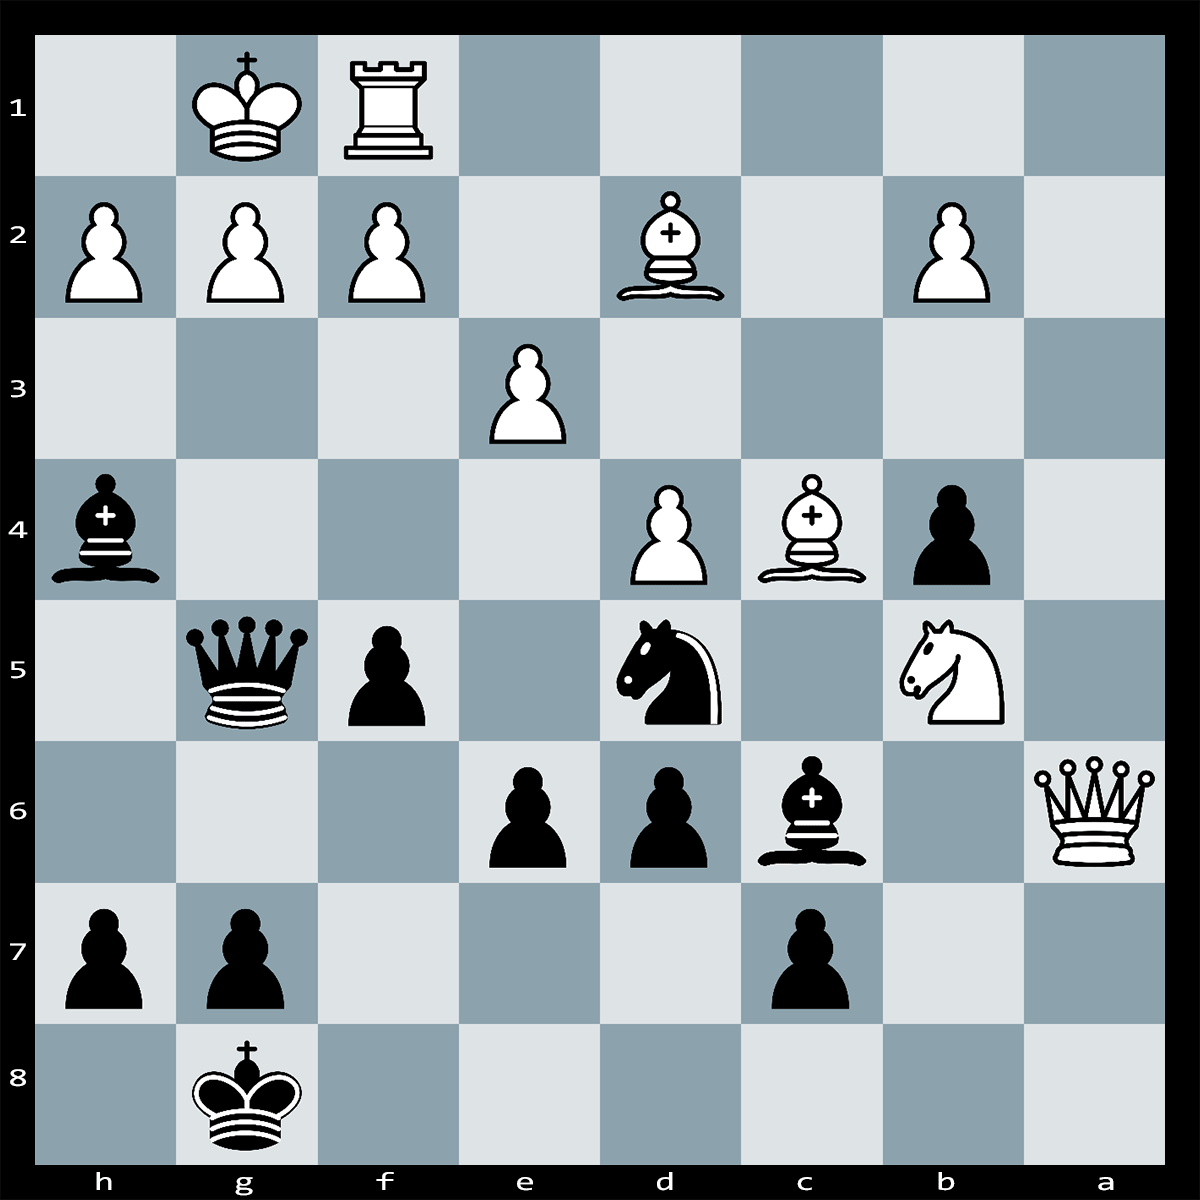 Mate in Three , Black to Move - Chess Puzzle #79